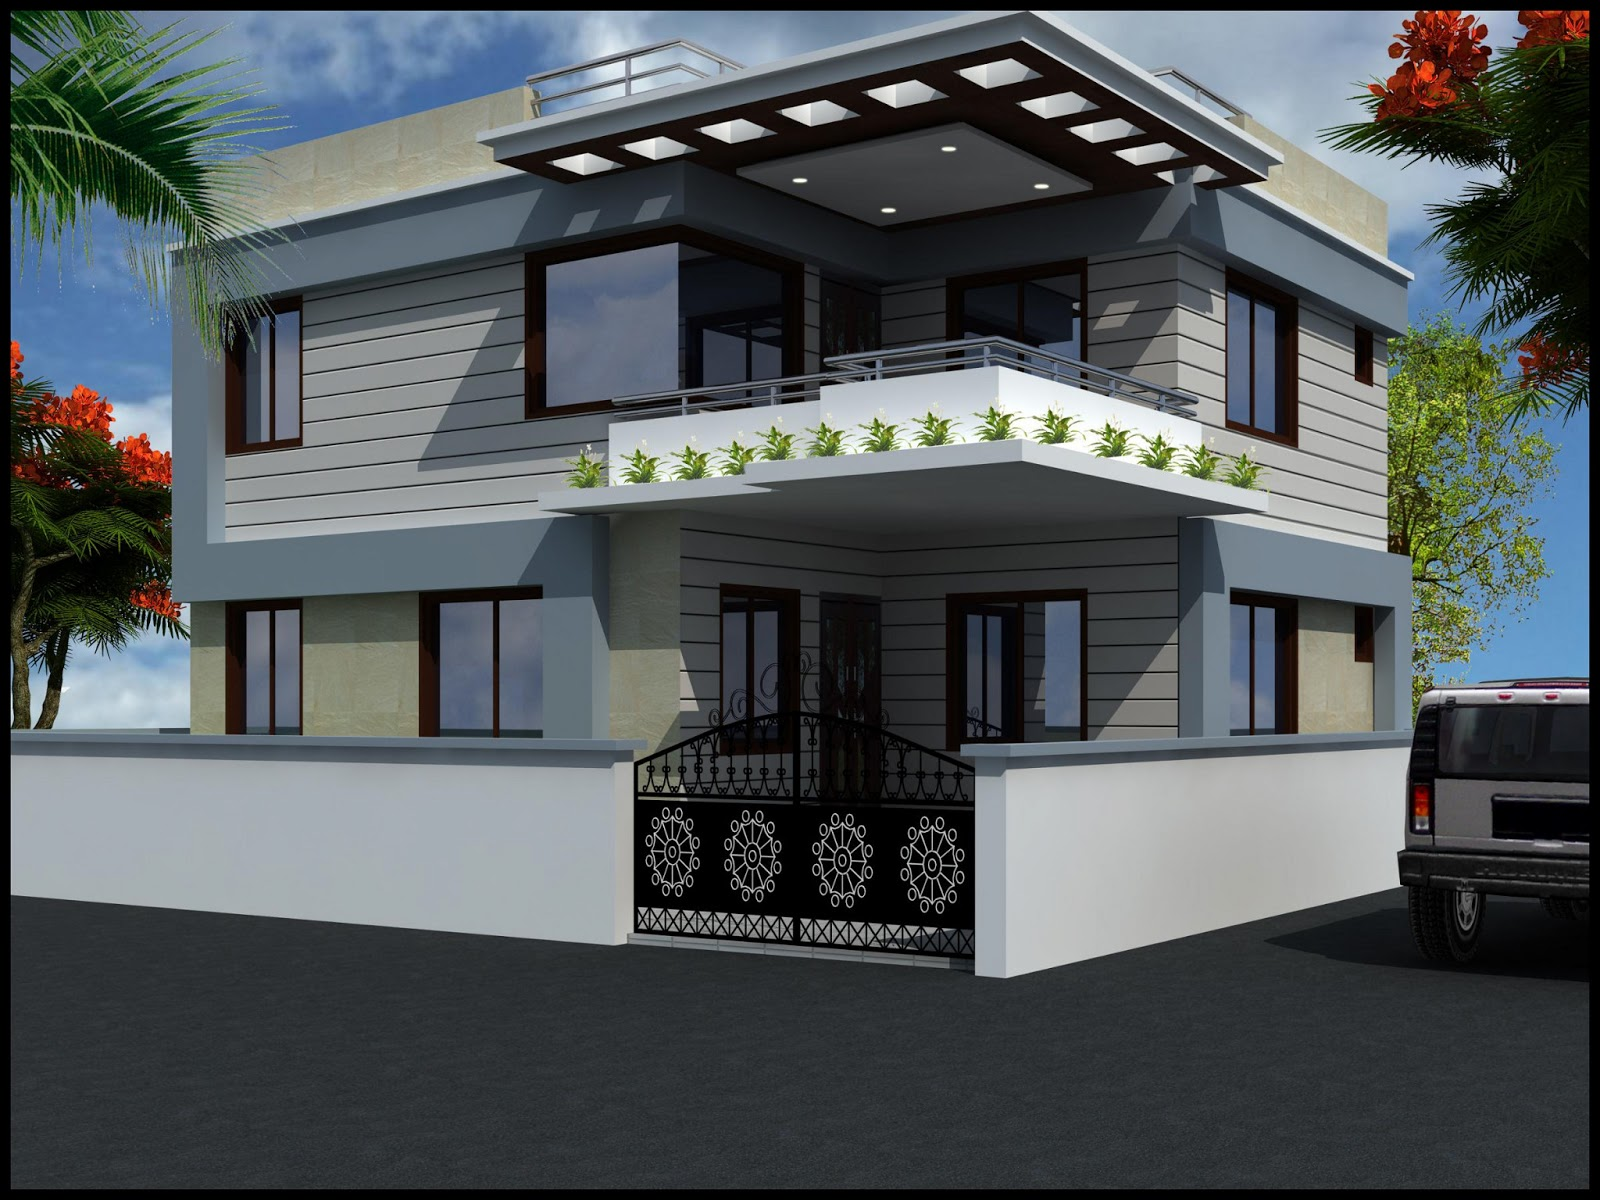 Modern beautiful duplex house design home decorating ideas for New duplex designs